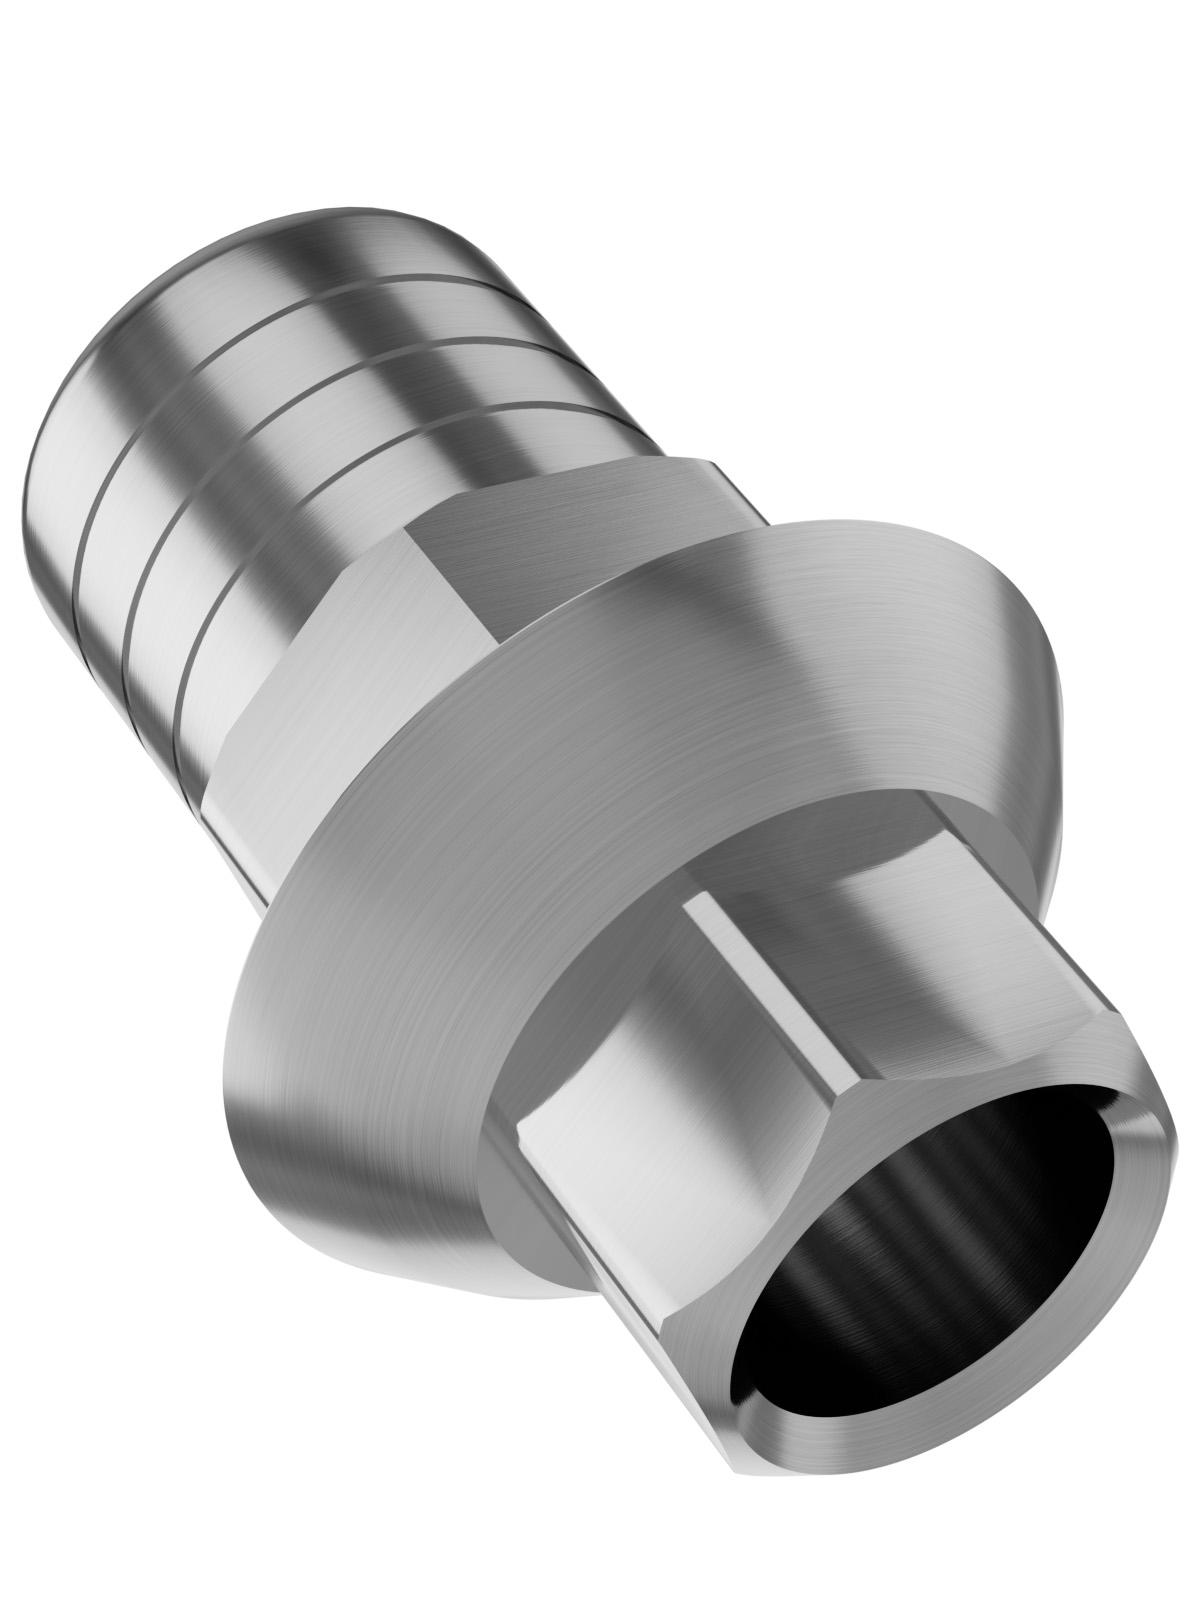 TIBASE2 Abutments for CAD/CAM